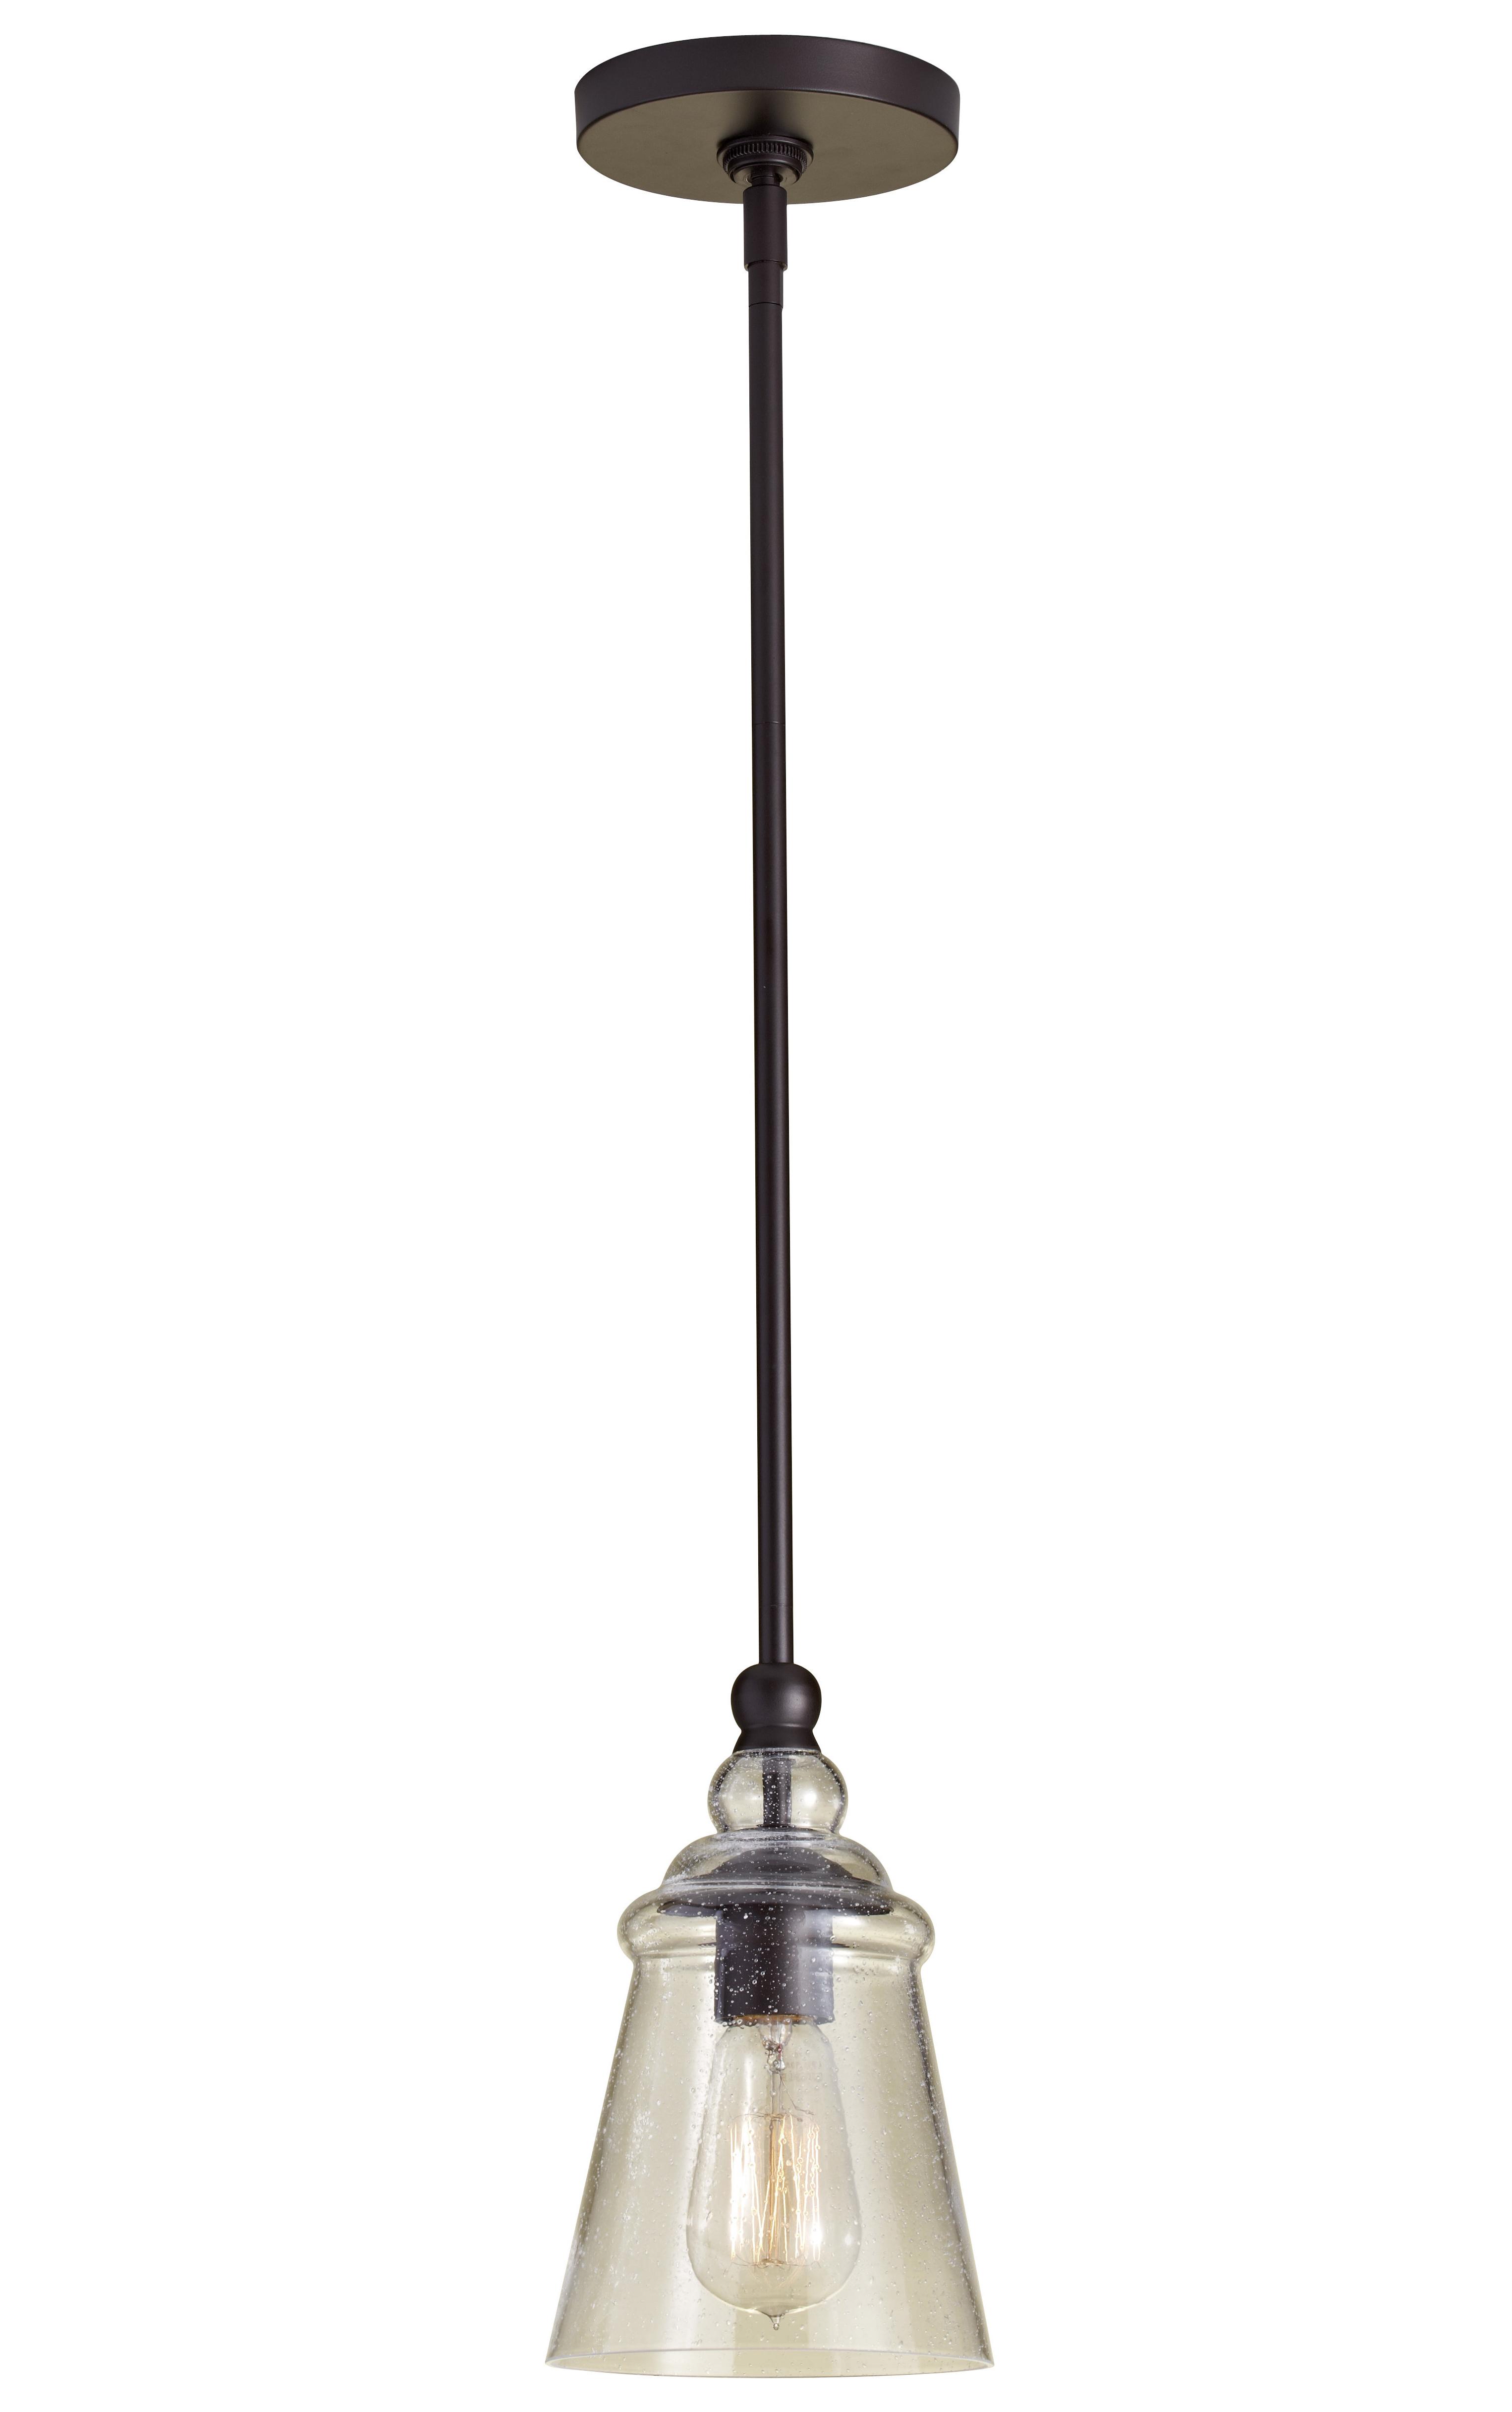 Sargent 1 Light Single Bell Pendant Intended For Most Recent Moyer 1 Light Single Cylinder Pendants (View 7 of 25)